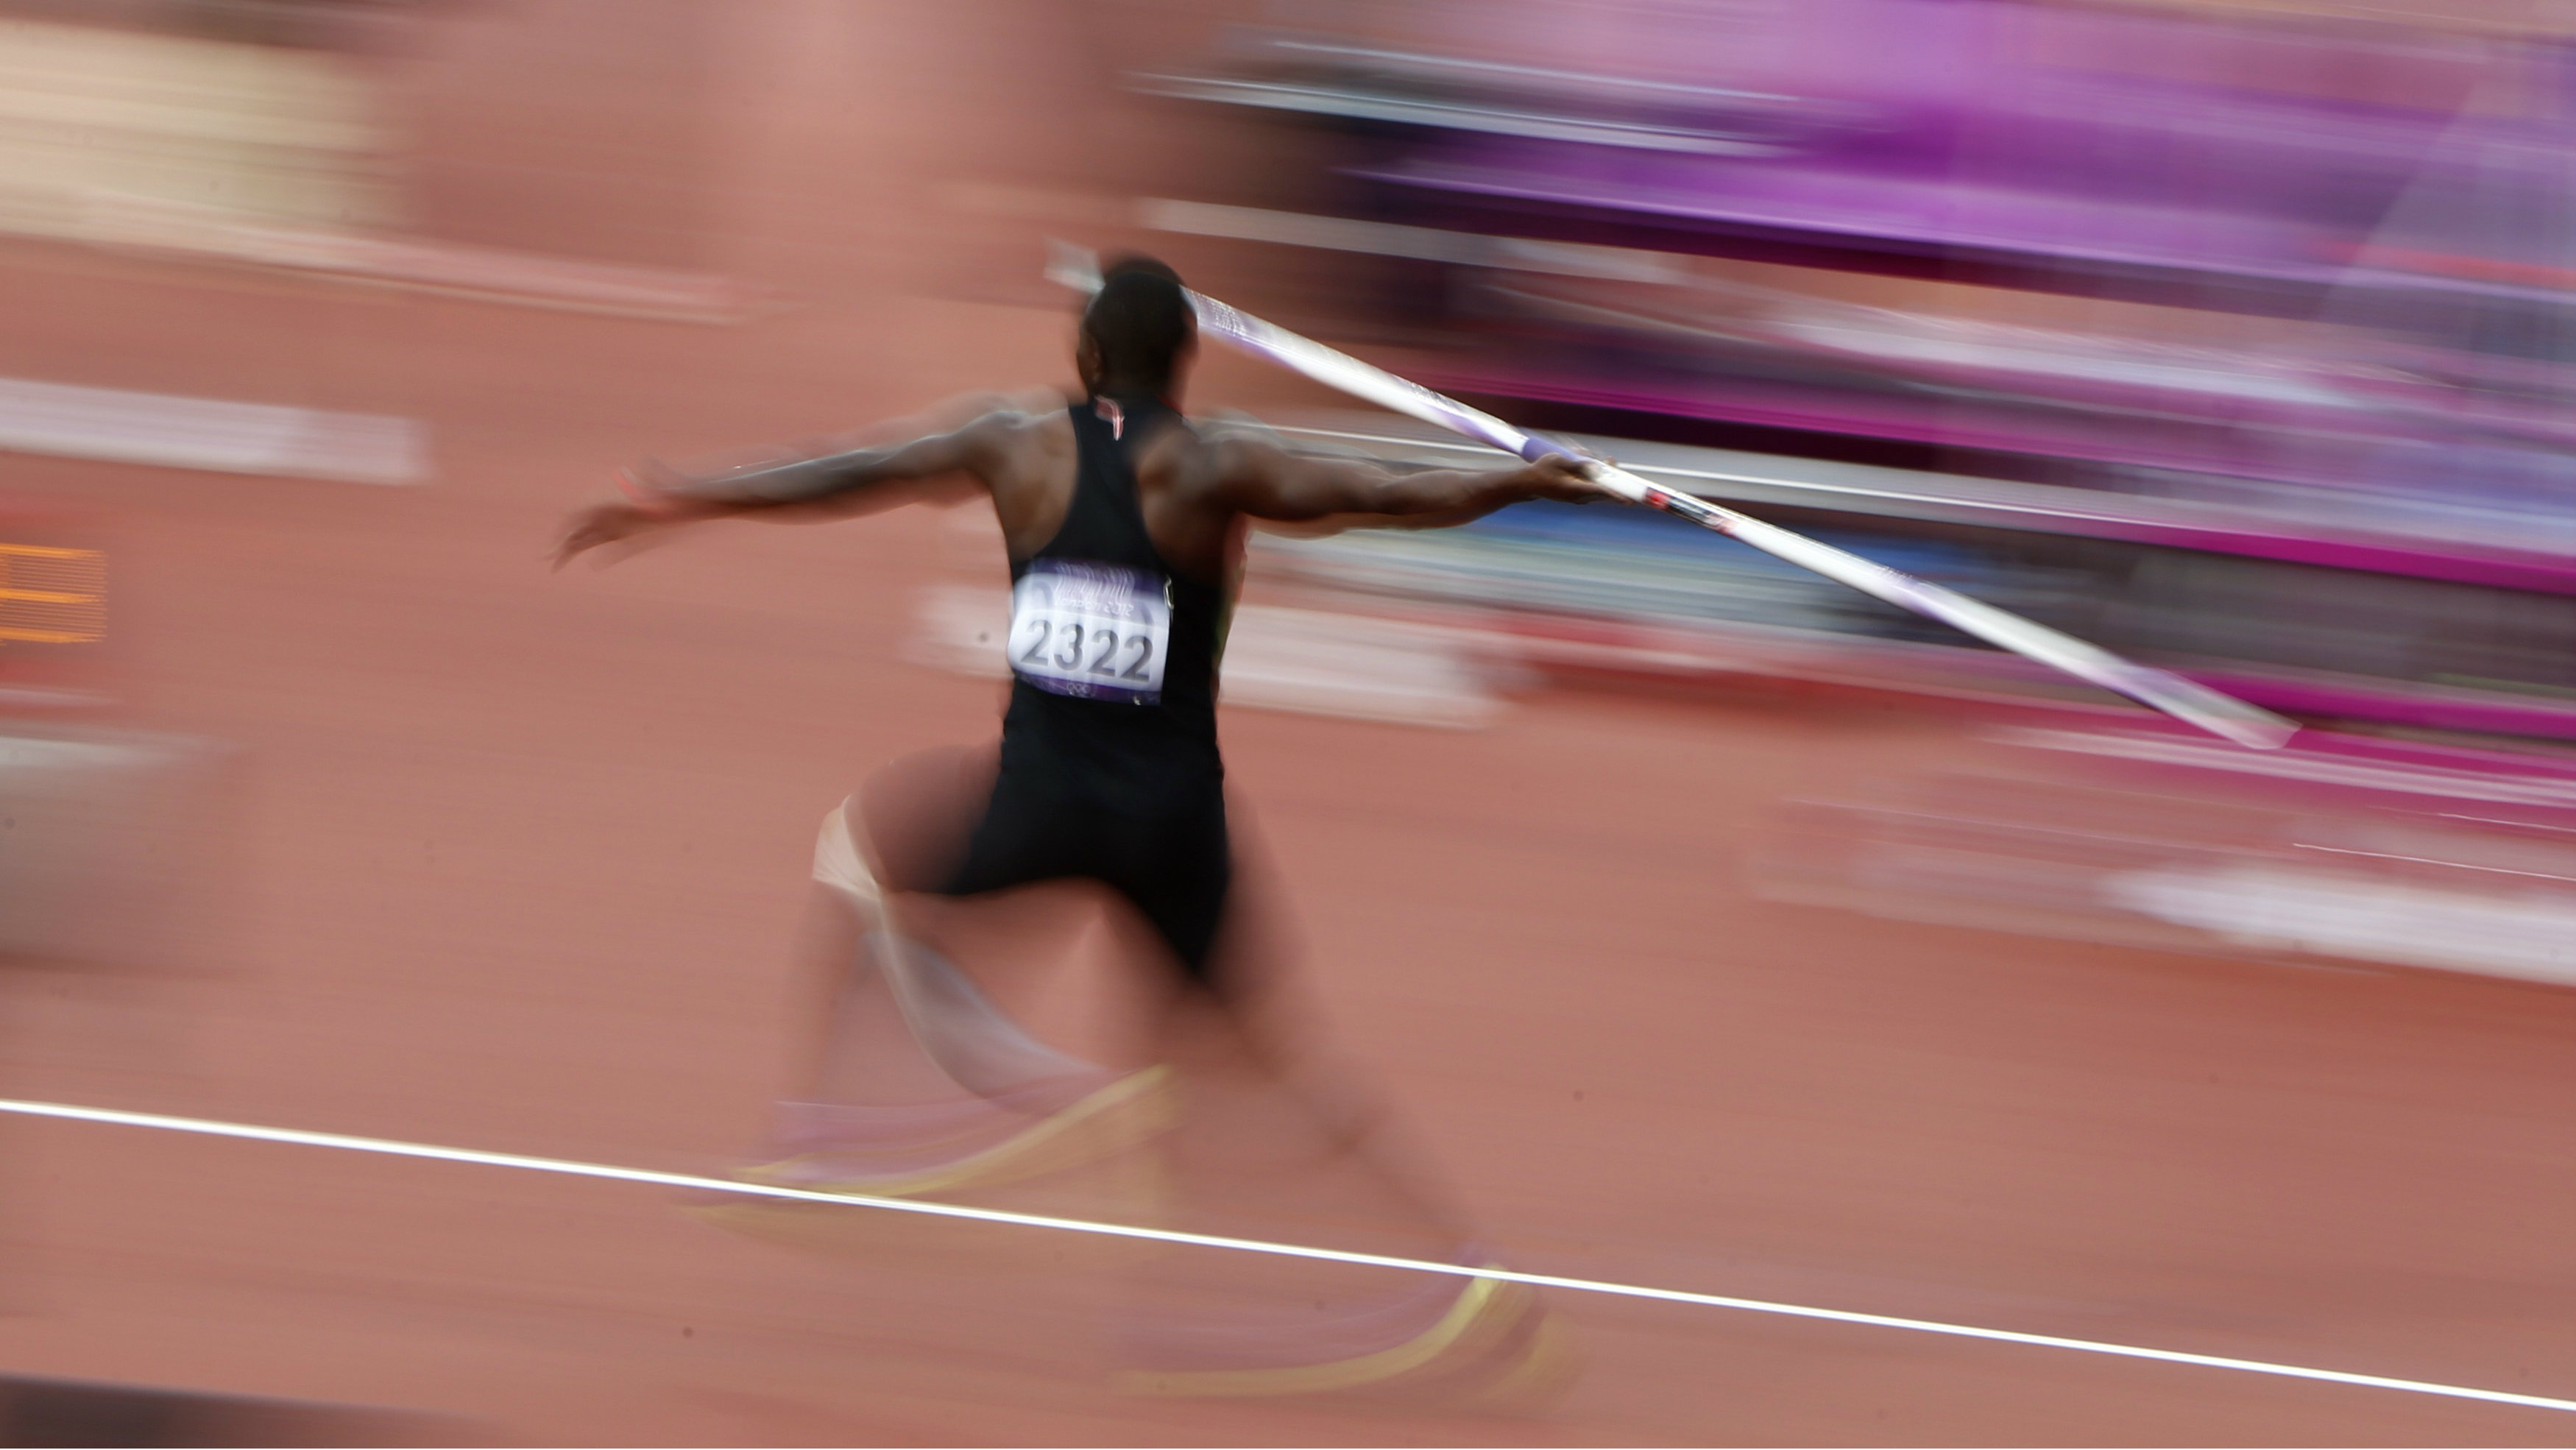 Kenya's Julius Yego competes in the men's javelin throw final at the London 2012 Olympic Games at the Olympic Stadium August 11, 2012.